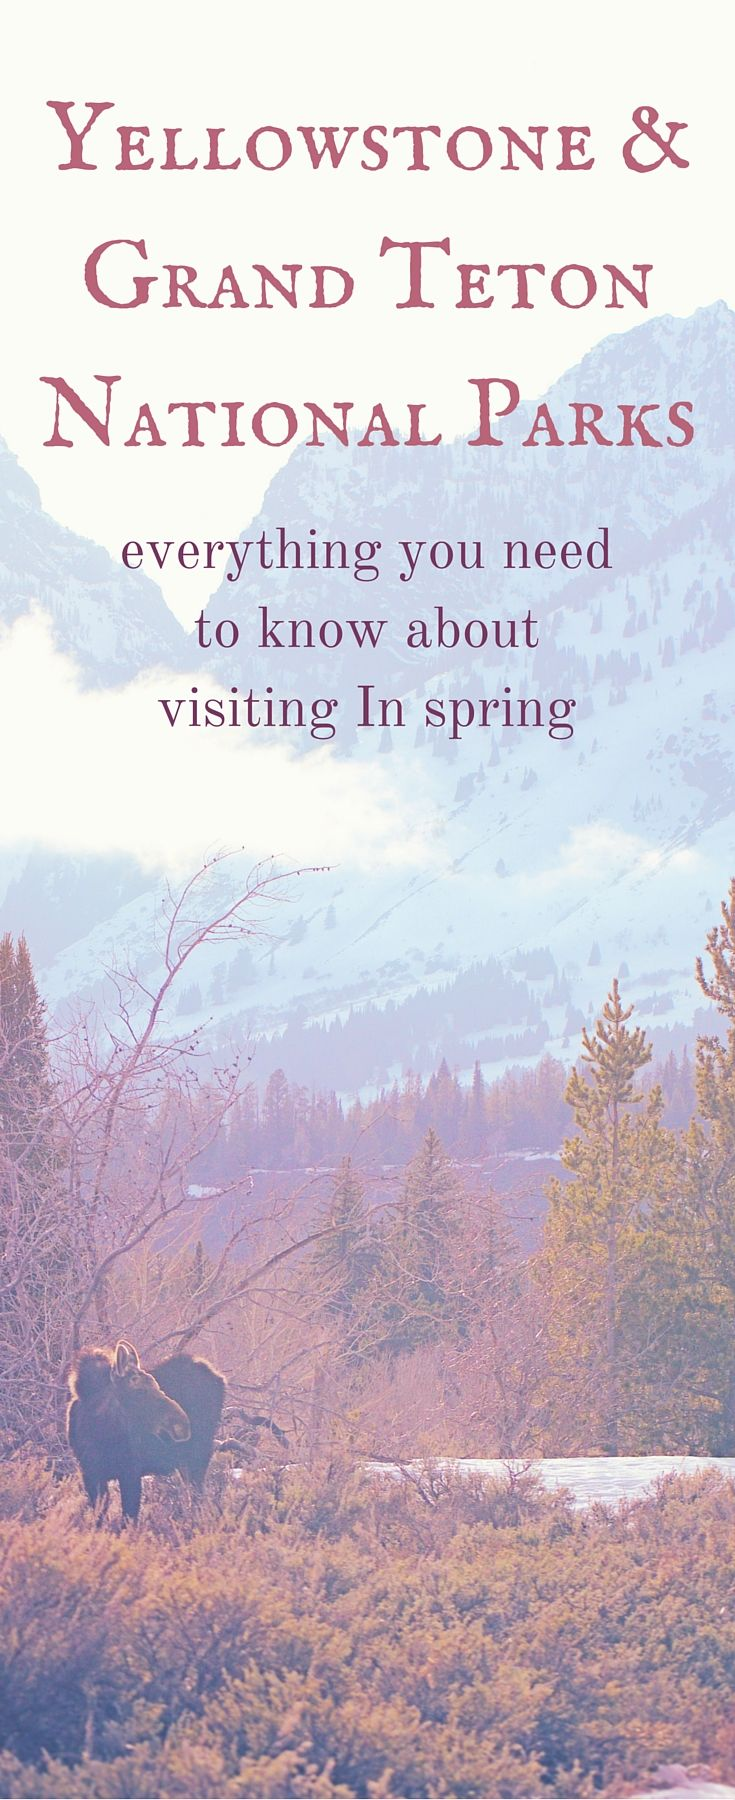 What You Need to Know About Visiting Yellowstone & Grand Teton National Parks in Spring | In this post I am going to give you advice for visiting The Grand Tetons and Yellowstone in the spring, a general overview of the seasonal calendar along with  a Top 10 List of my best learned travel tips through my own mistakes and misfortune for first timers visiting these majestic National Parks. Oh, and I'll throw in some pretty pictures, just in case you really don't care about any of the details.